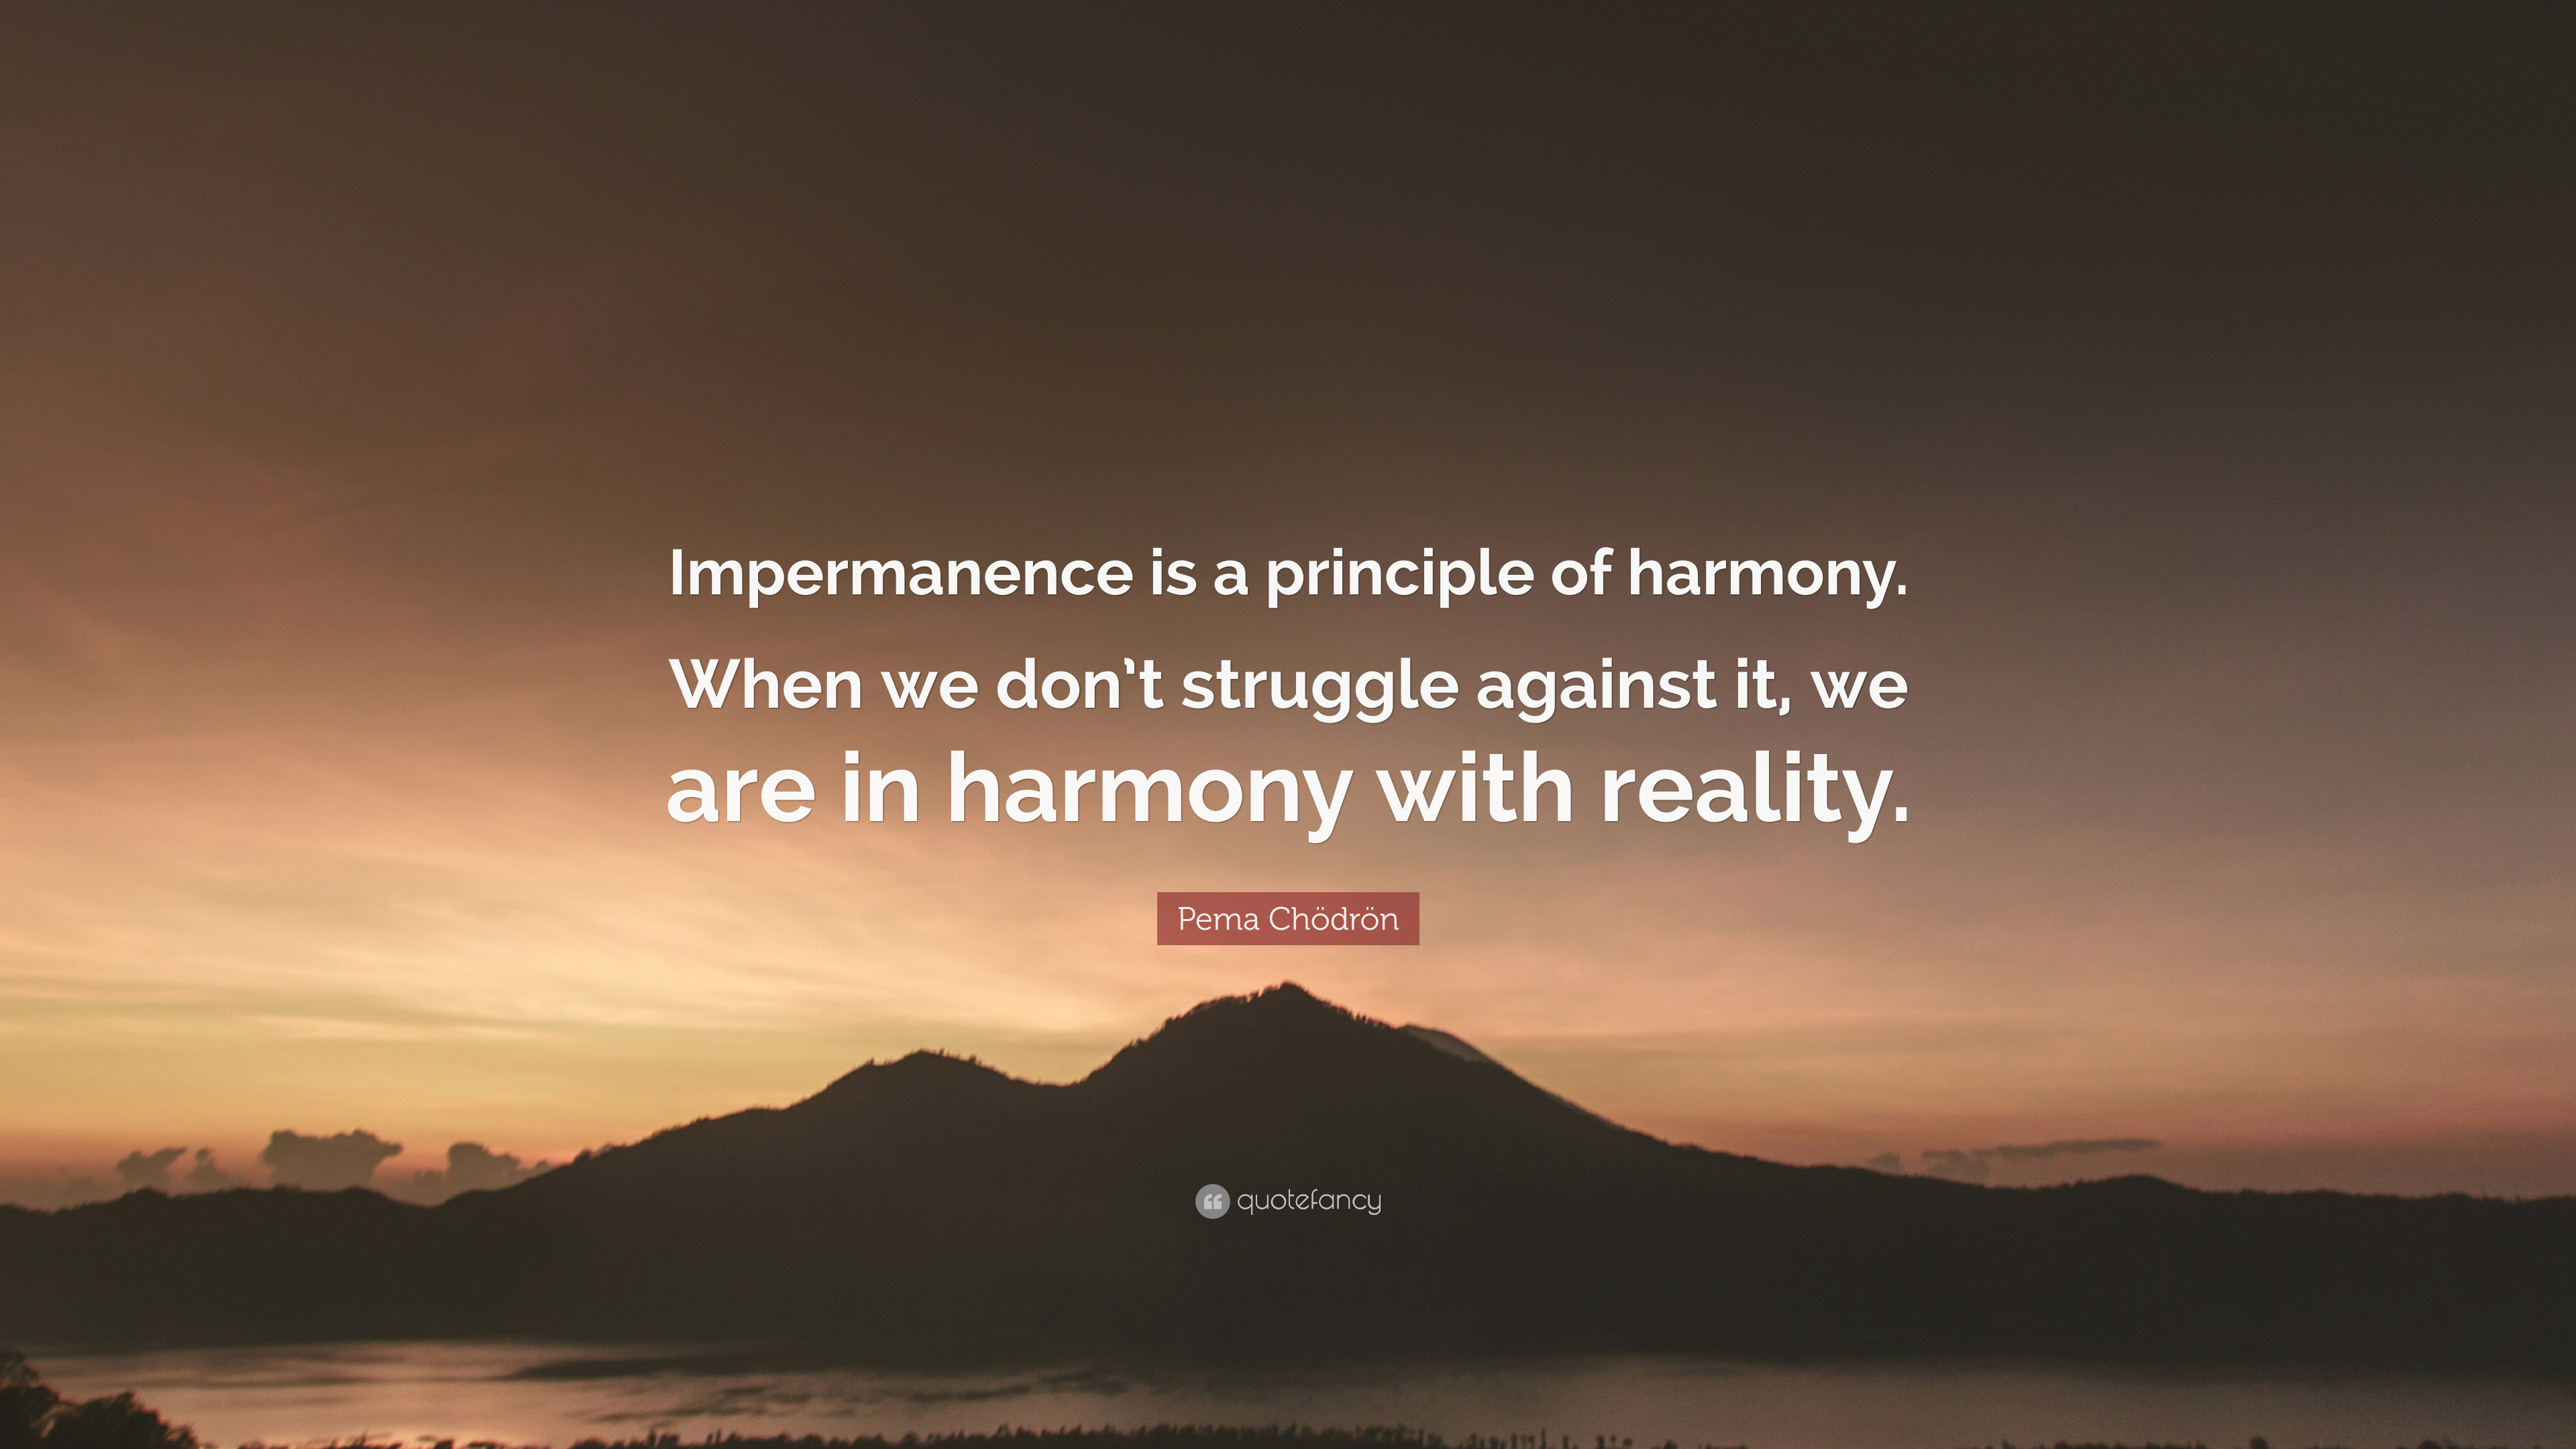 Carlene Hatcher Polite Quote: Impermanence is the law of